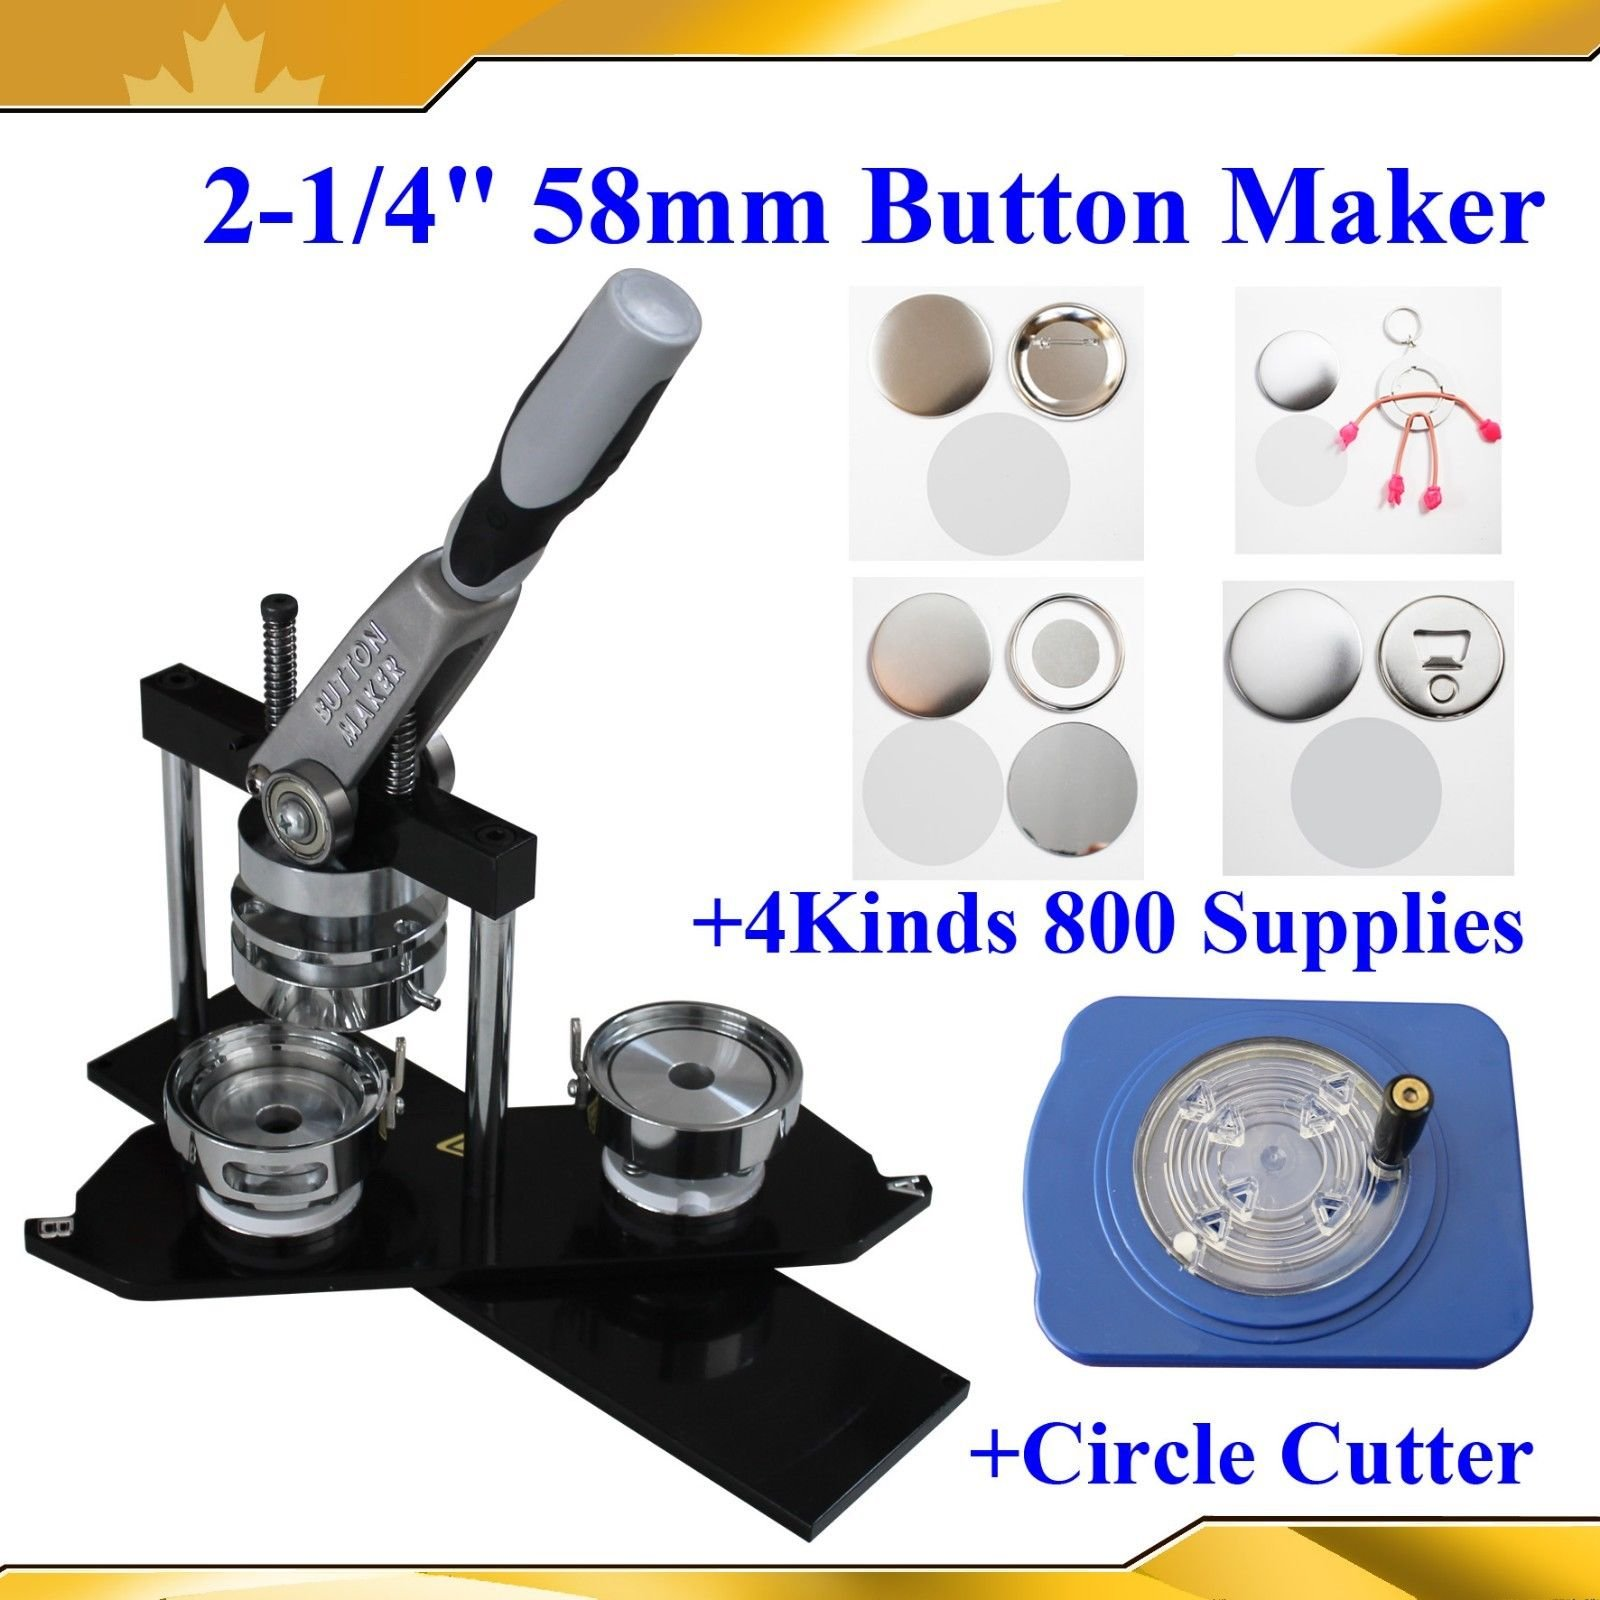 Superior N3 2-1/4'' 58mm Badge Maker+4 Kinds 800 Button Supplies+circle Cutter by Button Maker